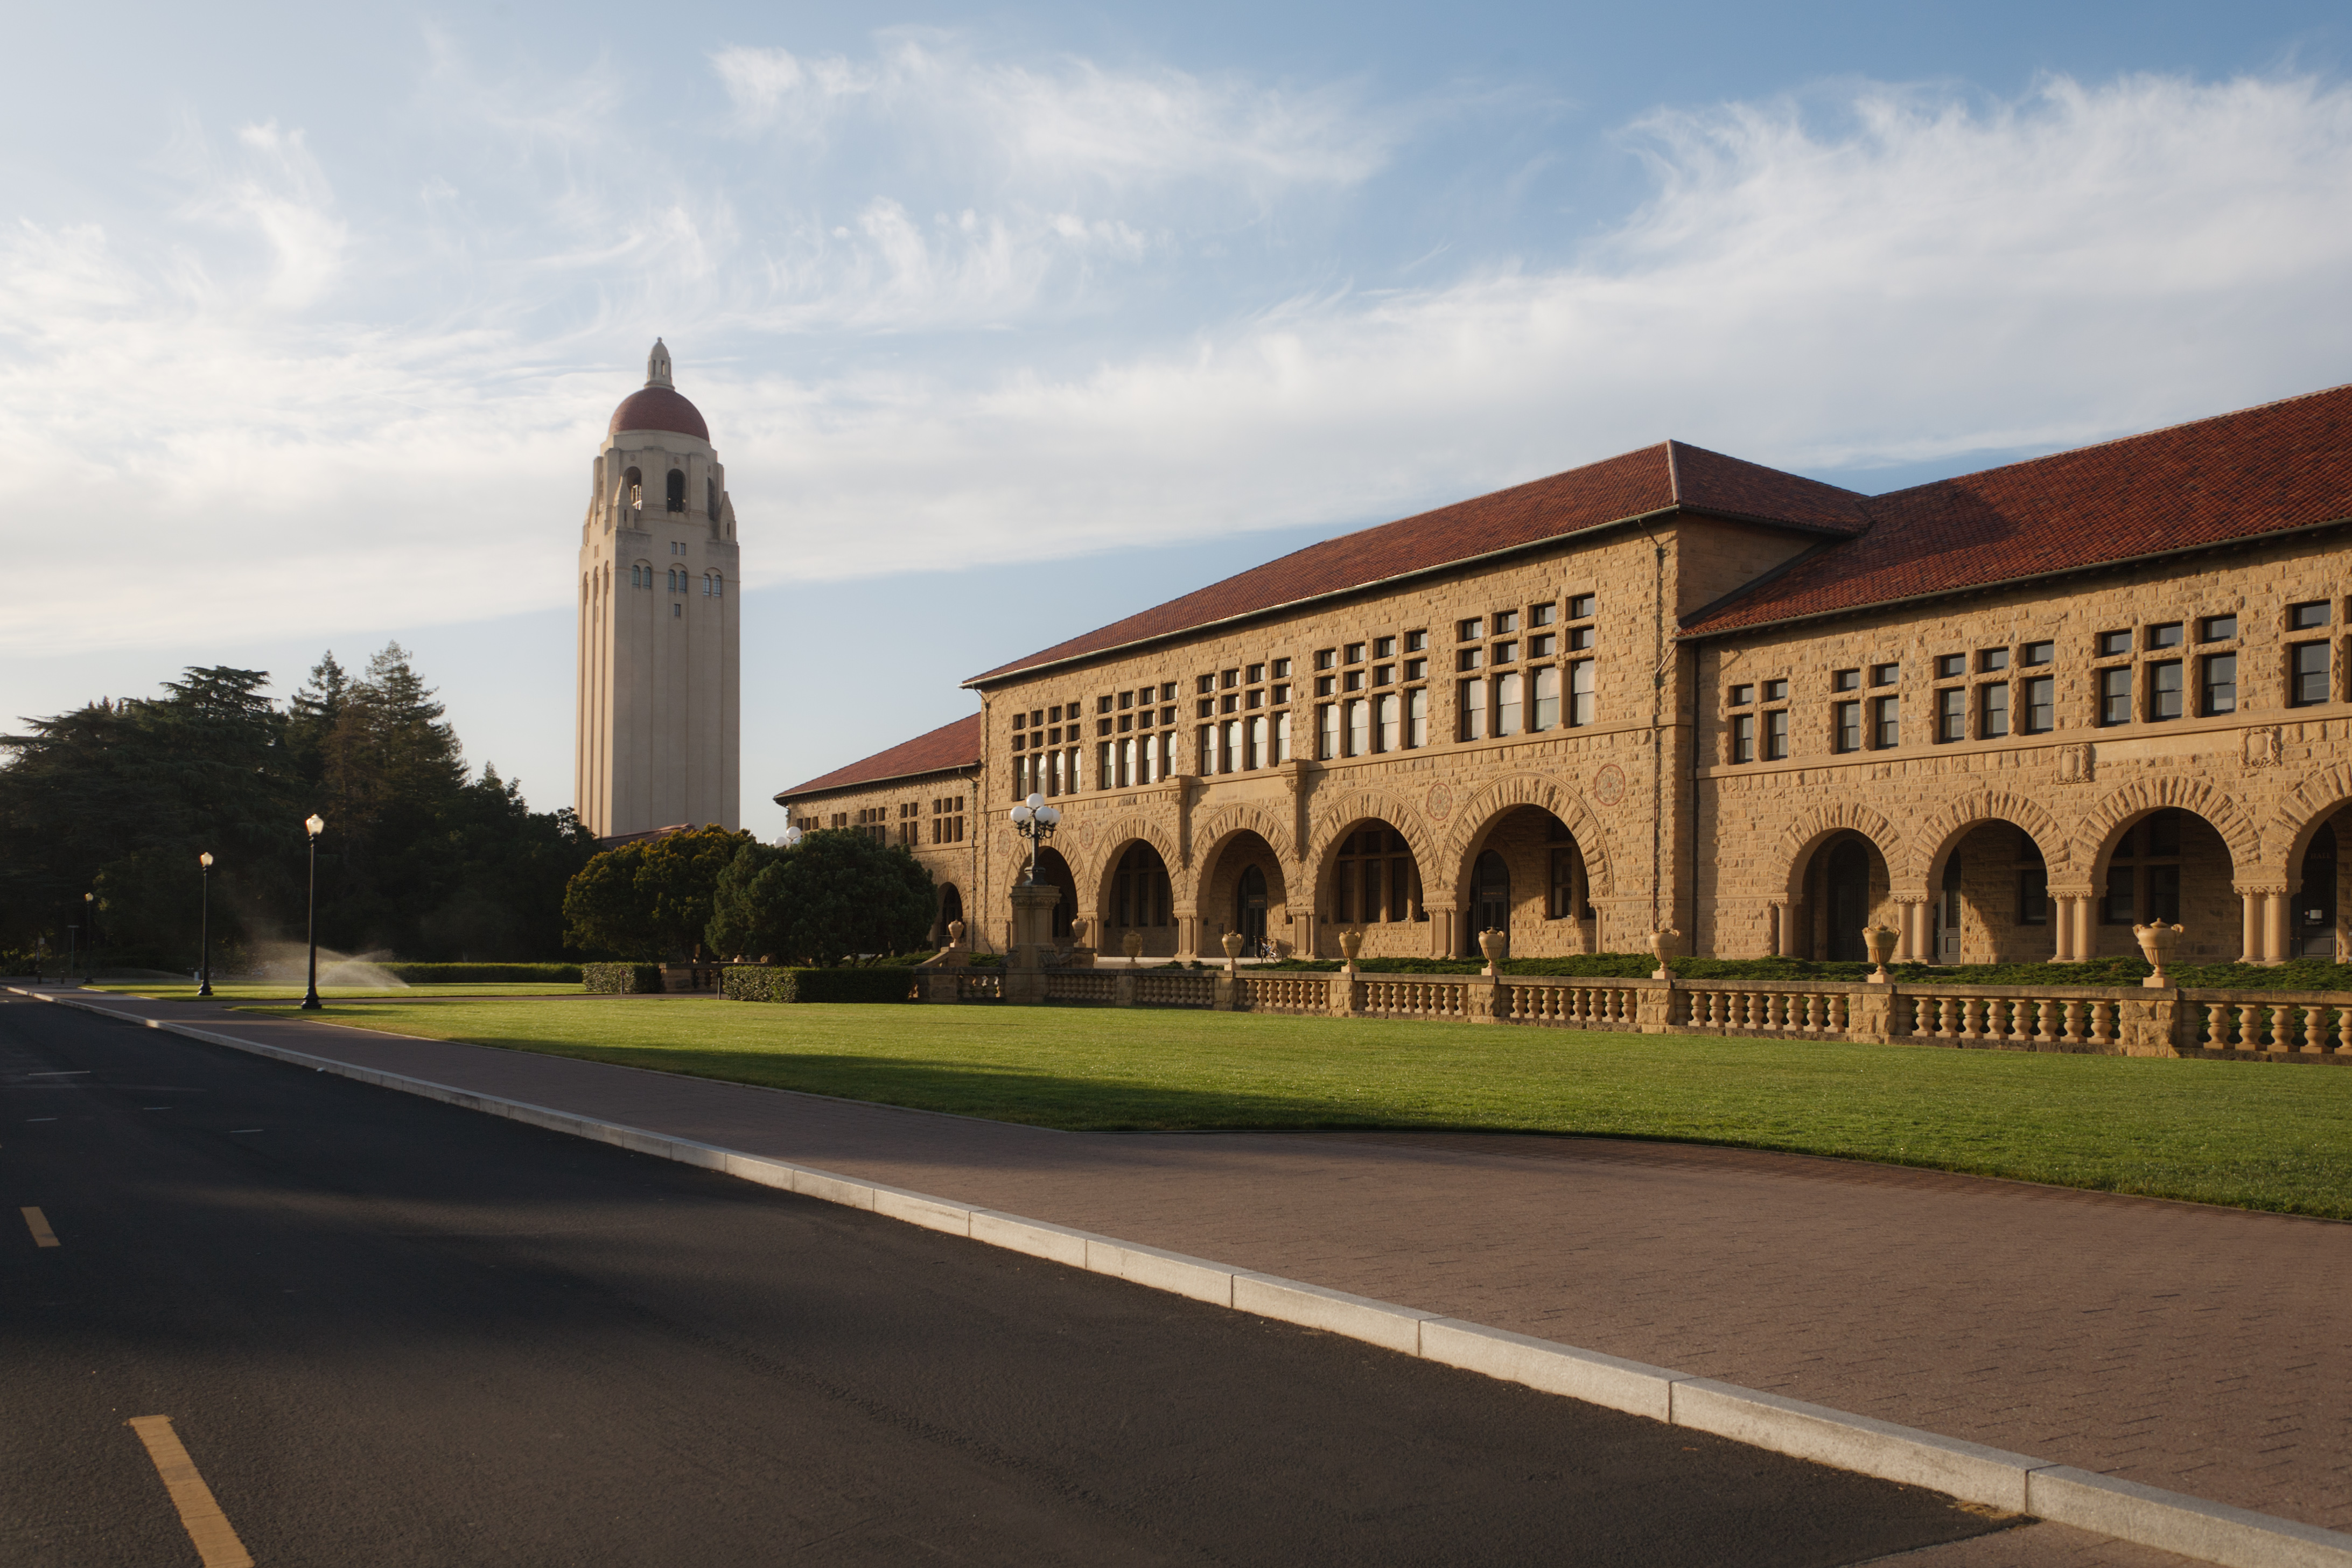 The Stanford Paradox: An Oasis Of Scientific Achievement In A Desert Of Political Correctness